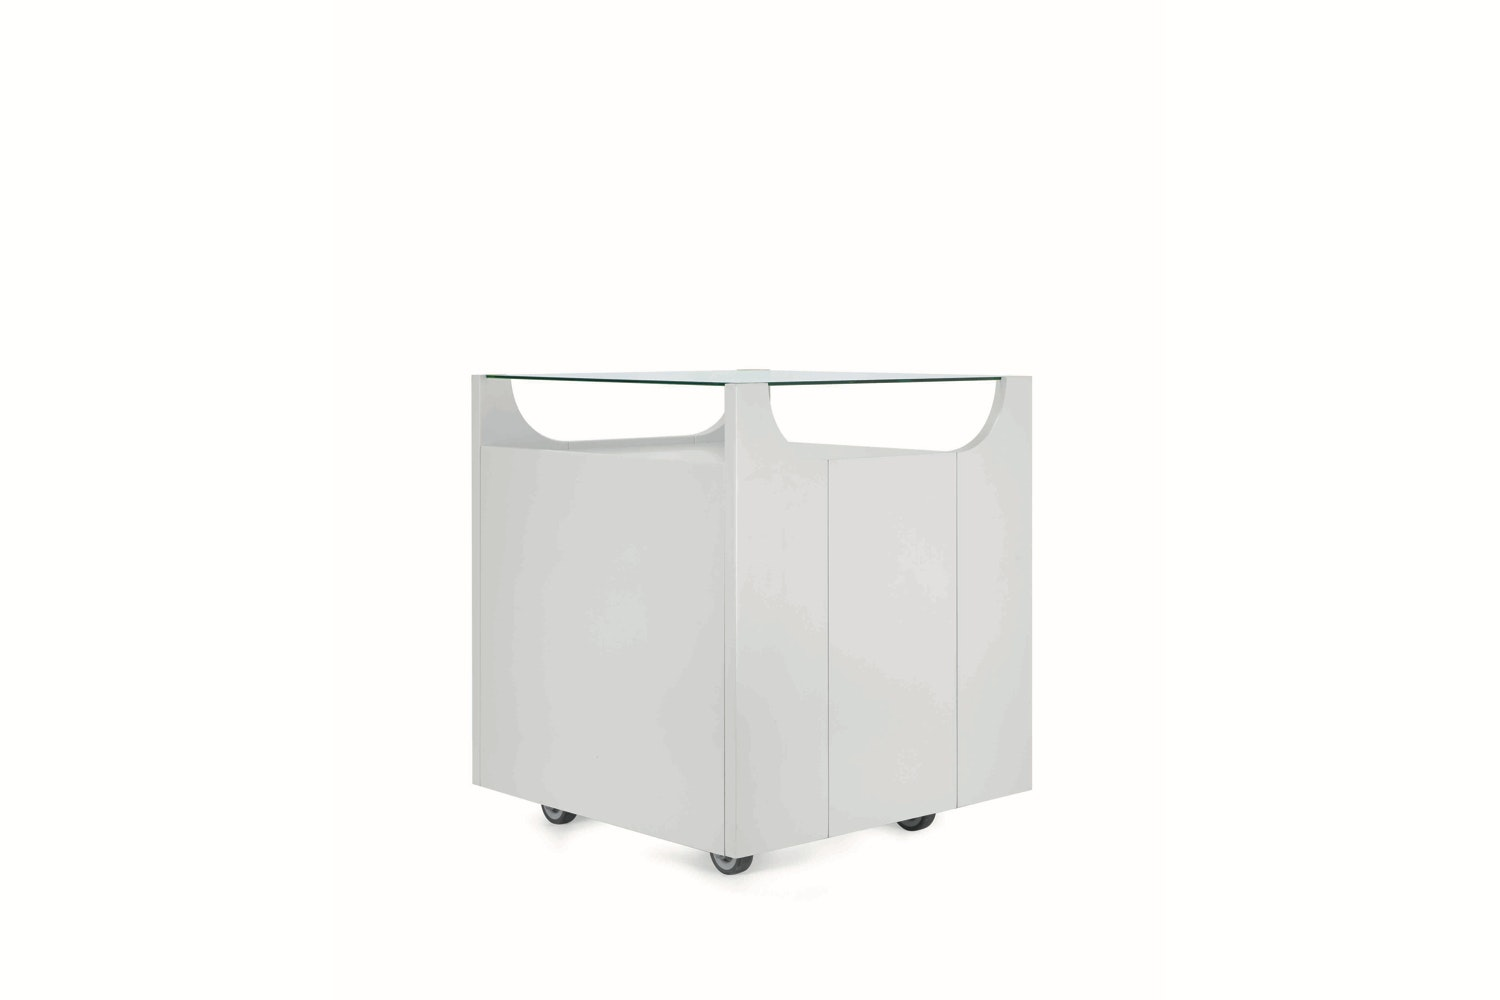 Cubovo Trolley by Bruno Munari for Porro